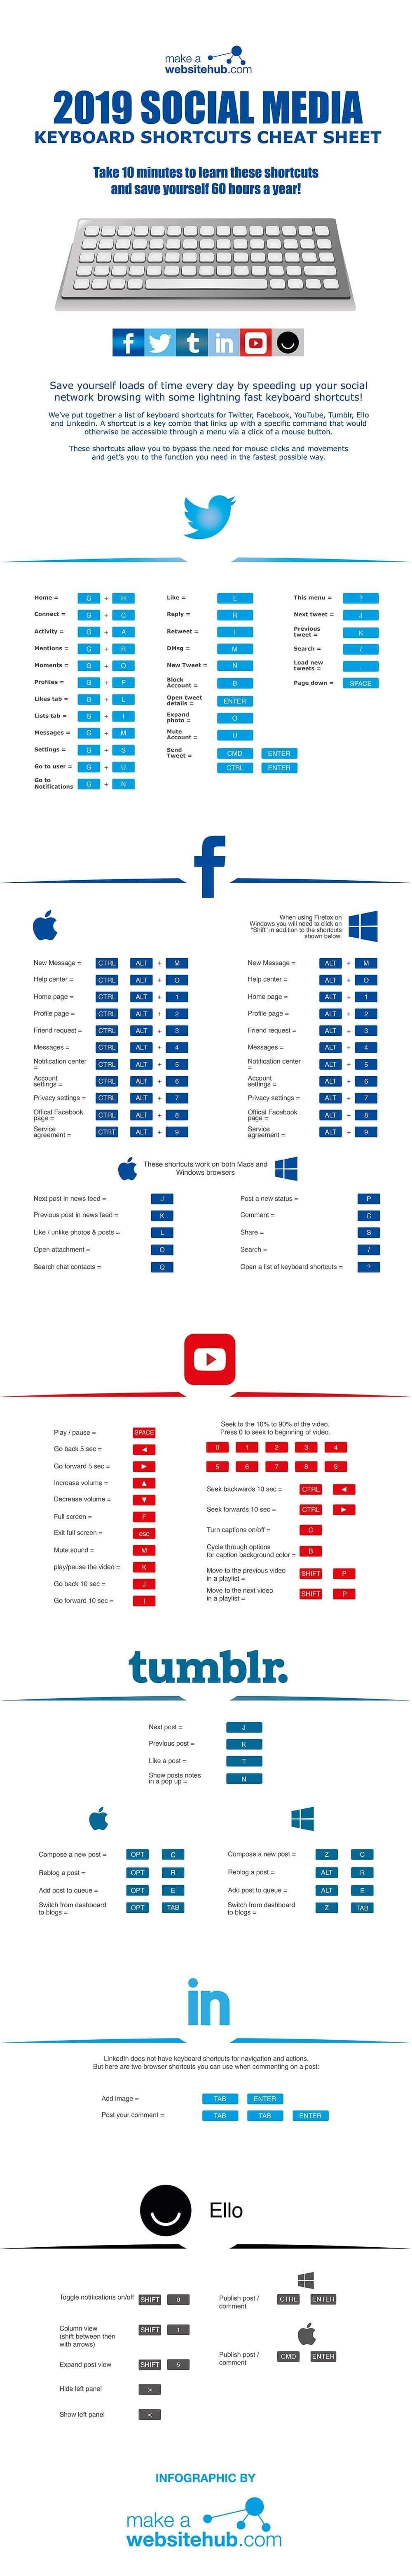 2019 Shortcuts in social media #infographic